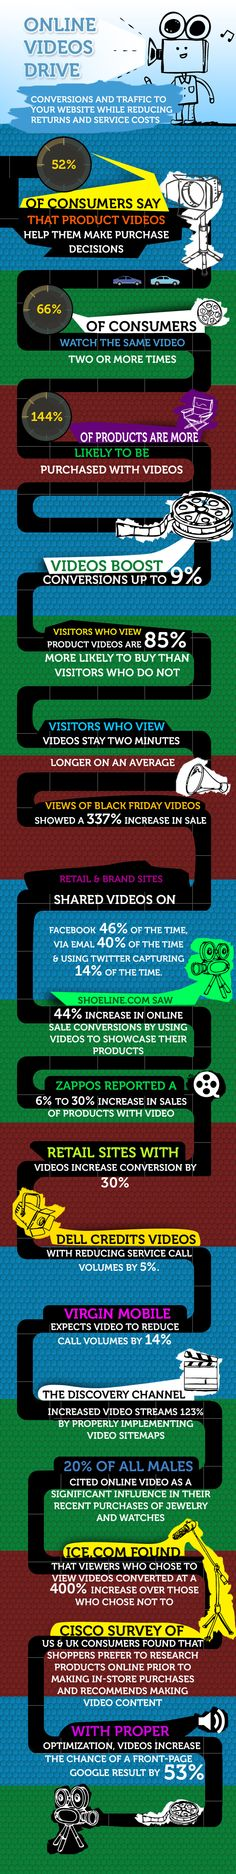 #OnlineVideos Drive Conversions and Traffic -#VideoMarketing [#Infographic]